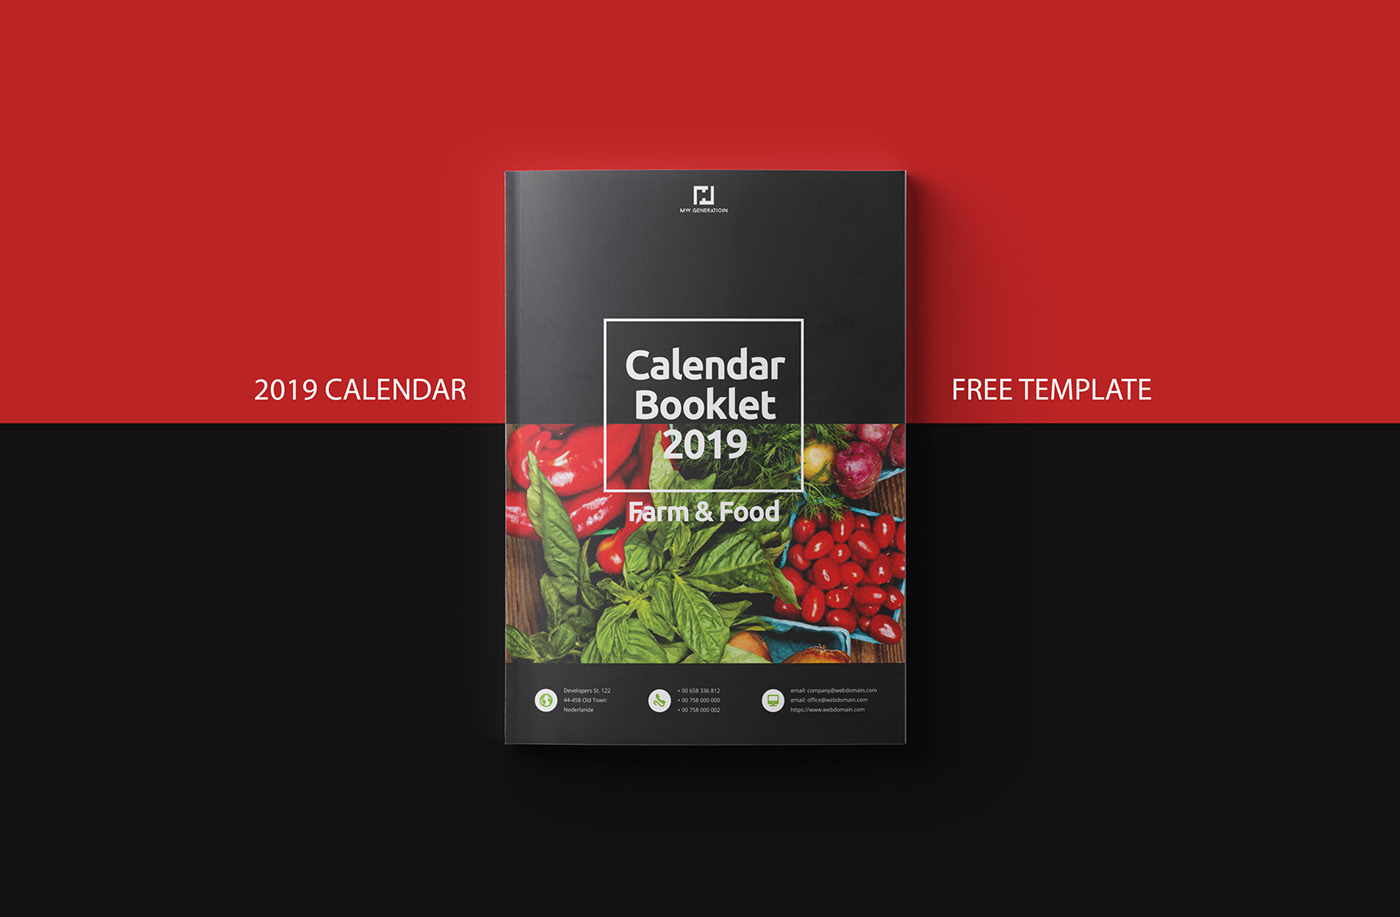 Free Calendar 2019 Indesign Template On Behance